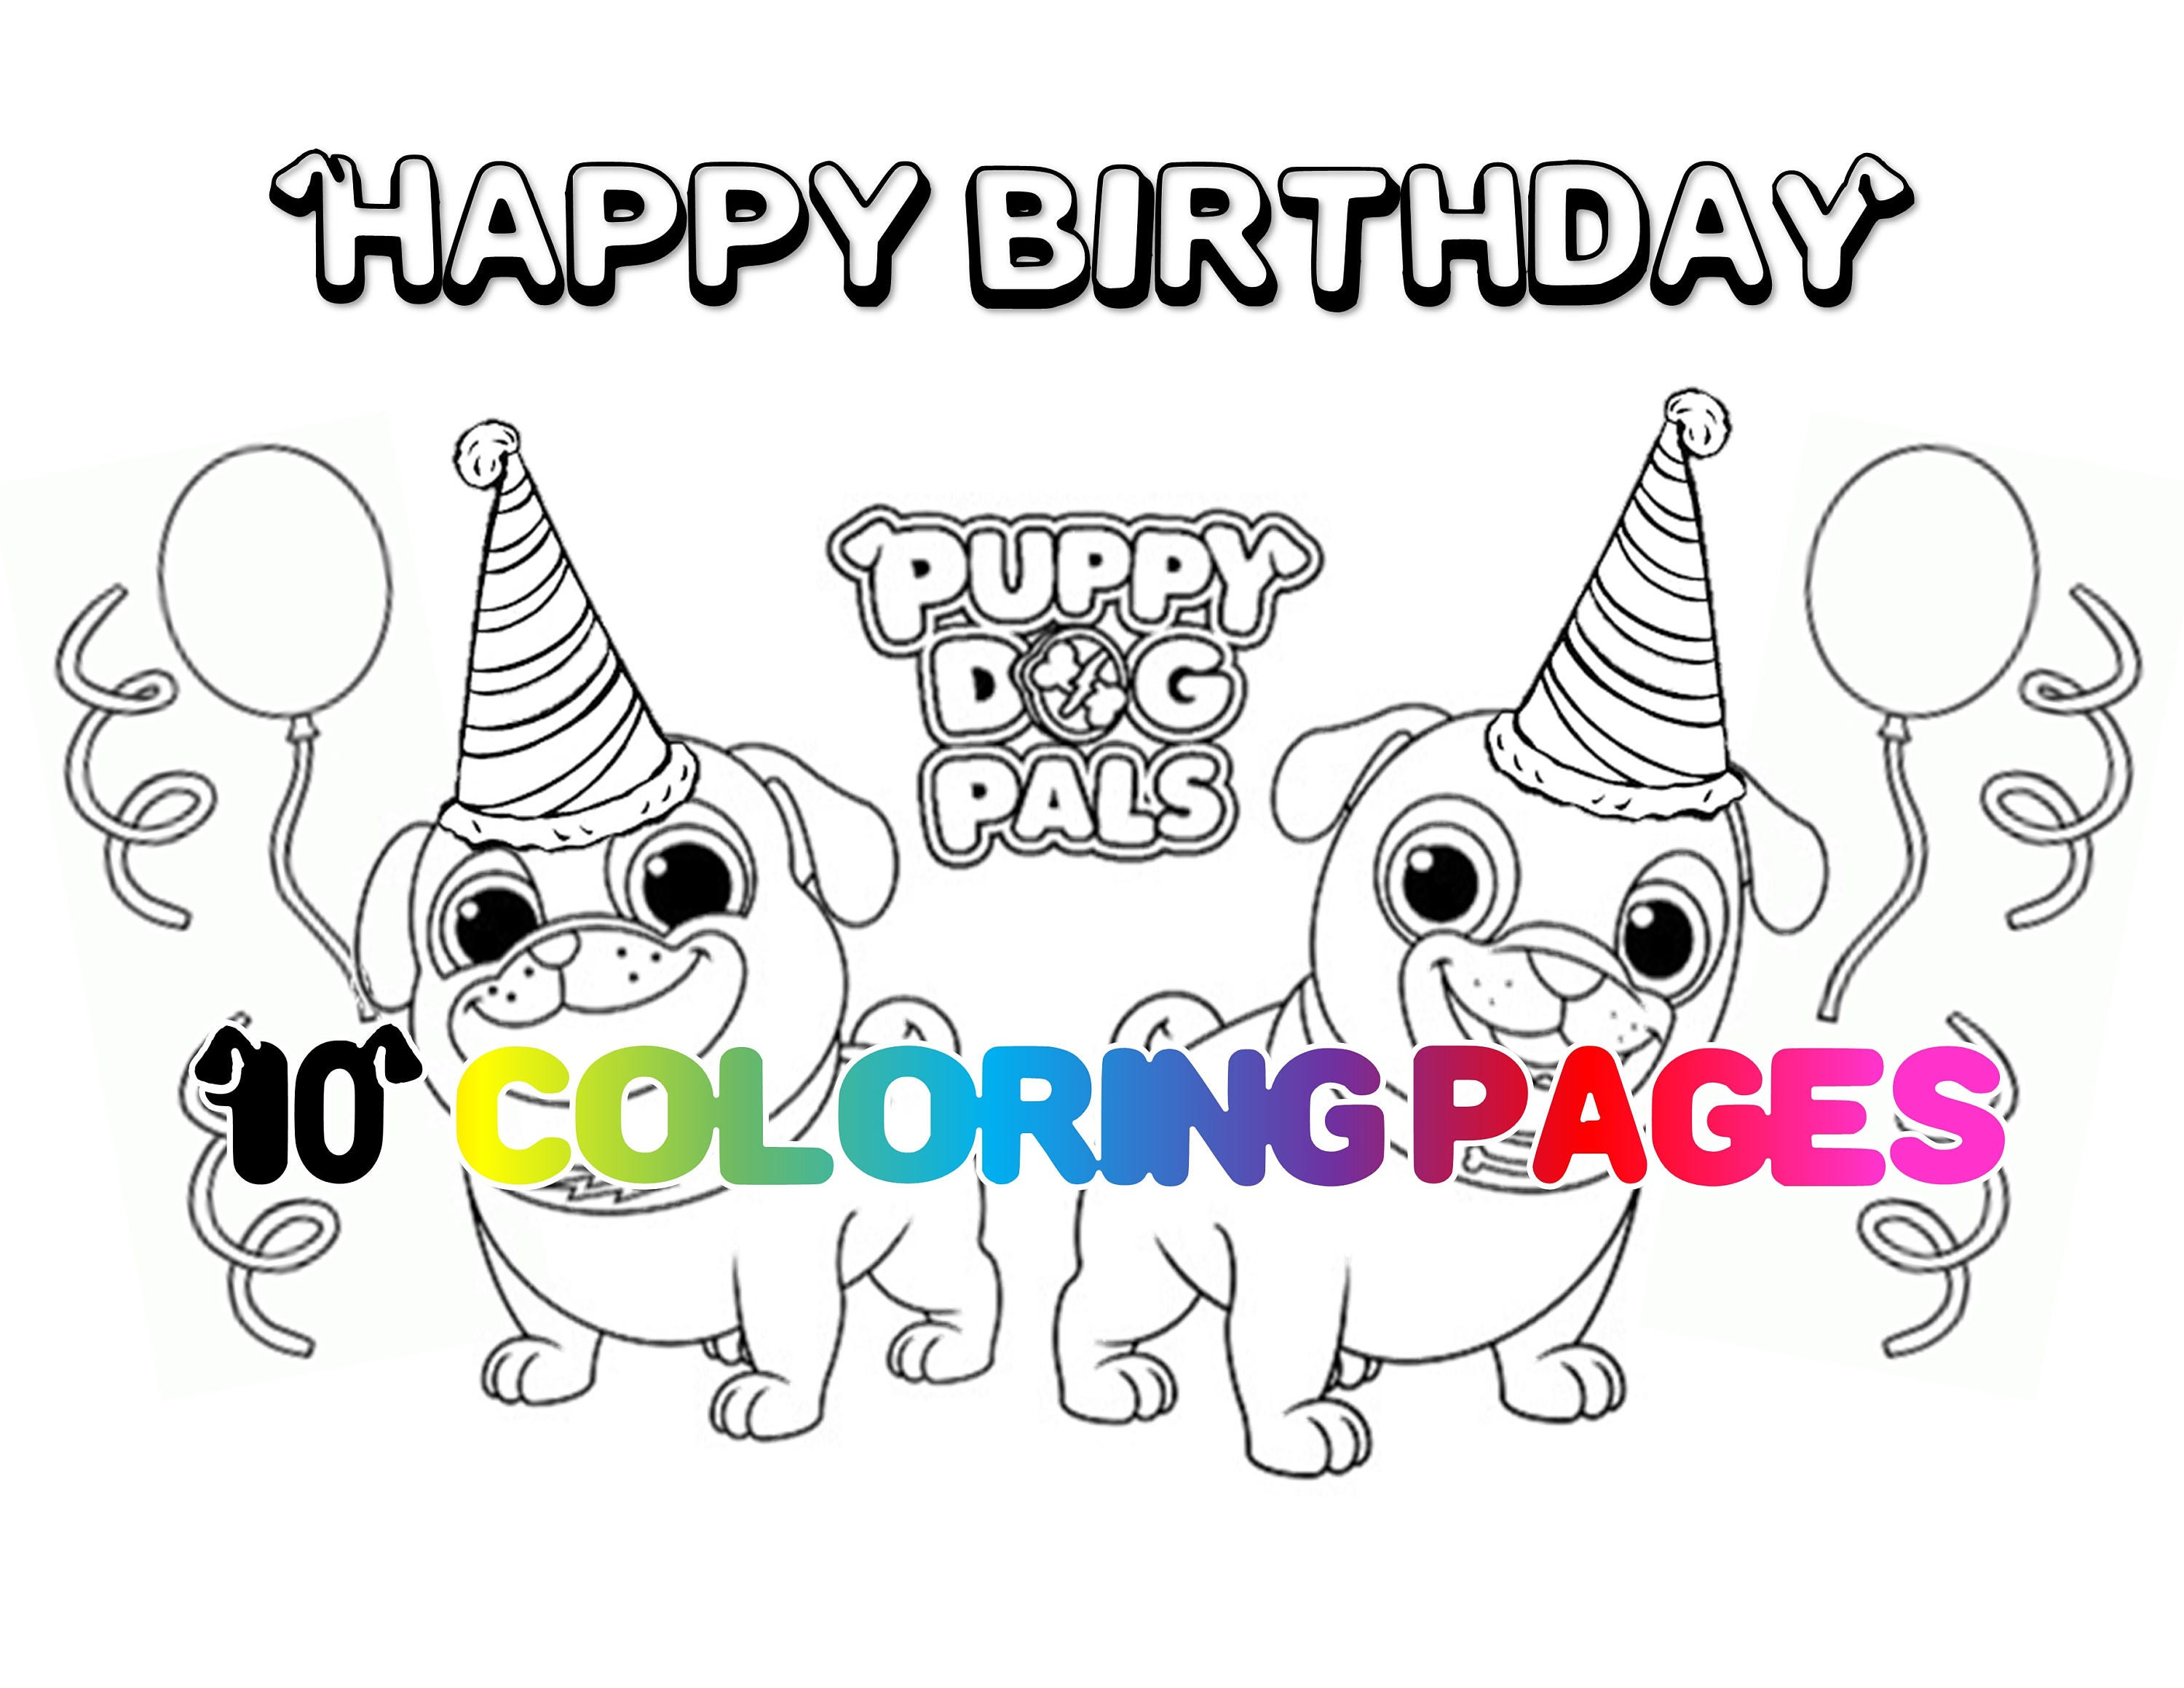 Coloring Pages puppy dog pals printables